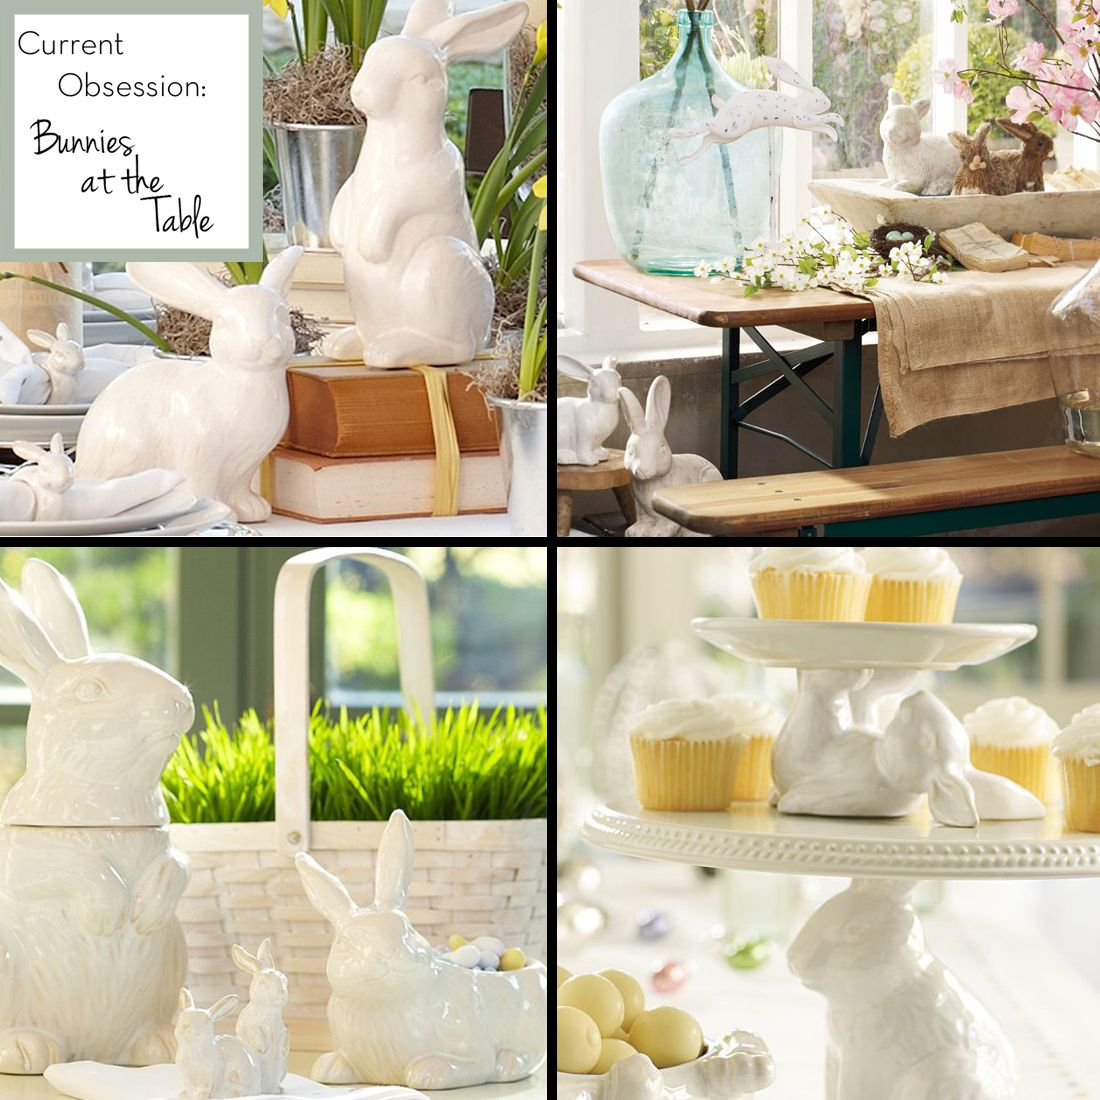 Pottery Barn Easter! That bunny stand is so cute!